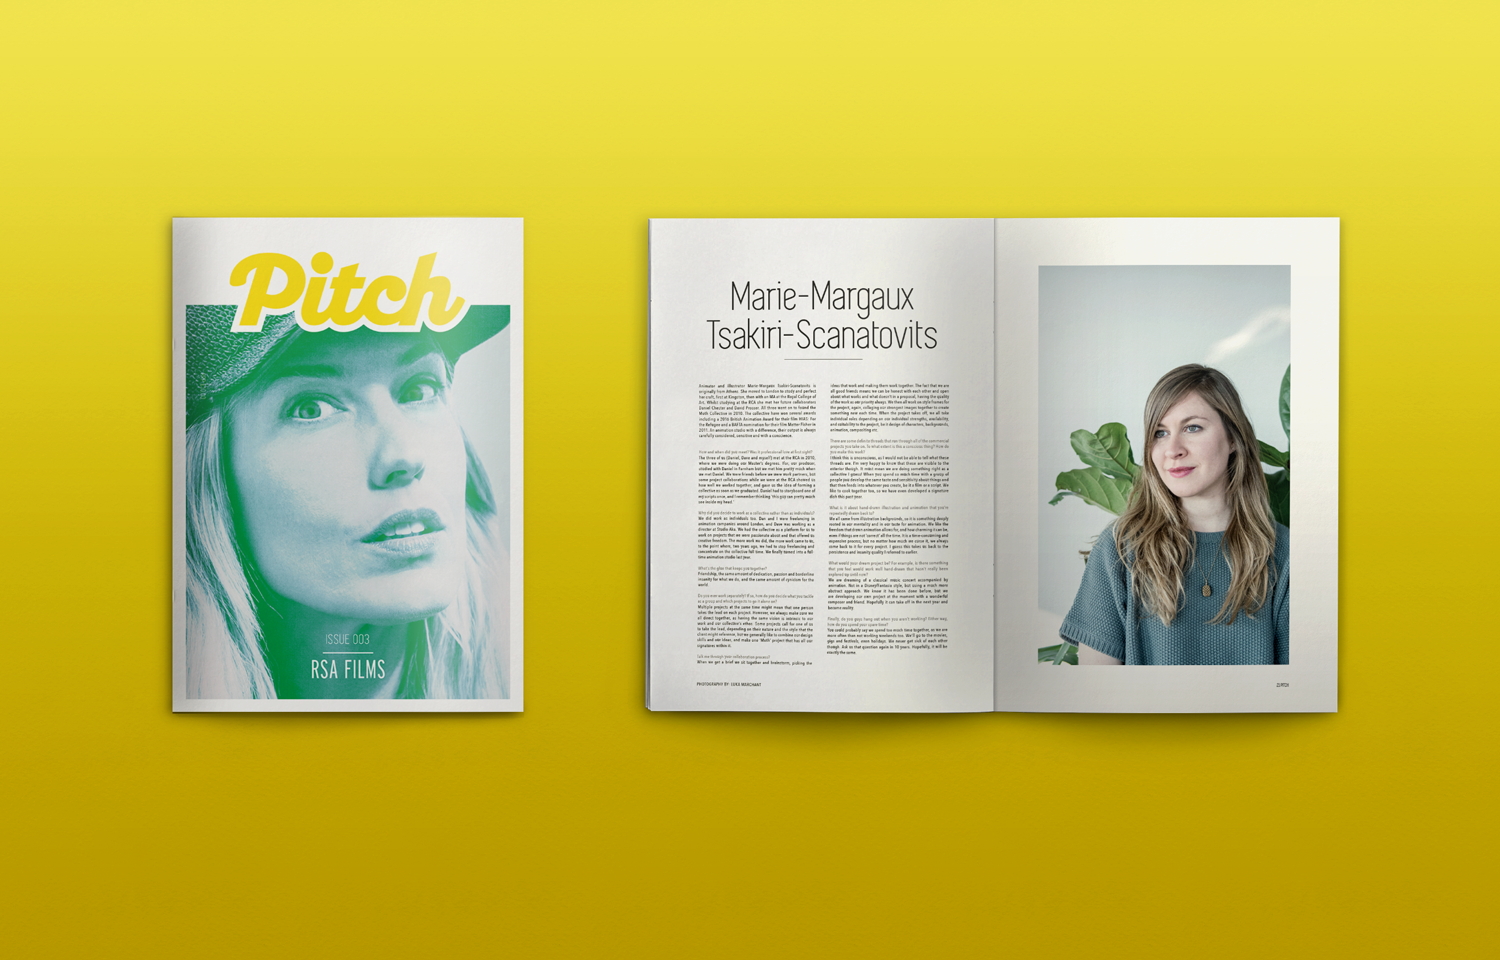 The Pitch Fanzine font cover and inside spread for issue 03.